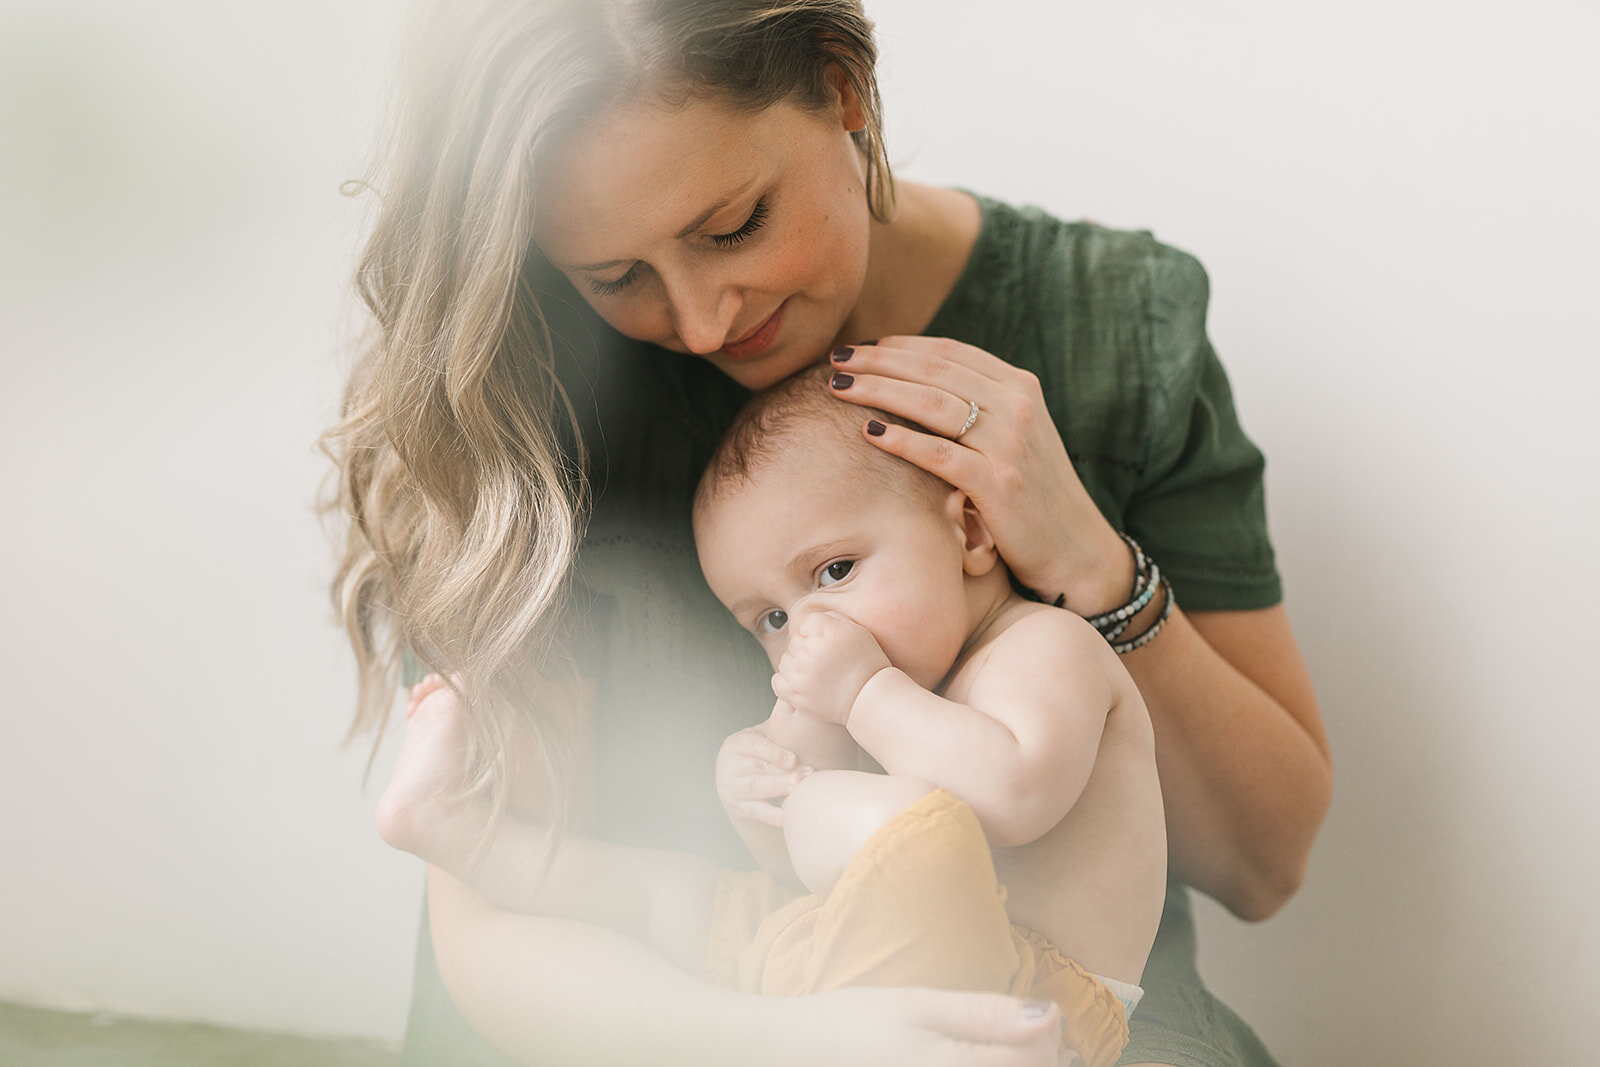 Mother_and_child_captured_in_a_natural_light_Seattle_studio_photographed_by_Chelsea_Macor_Photography-16.jpg